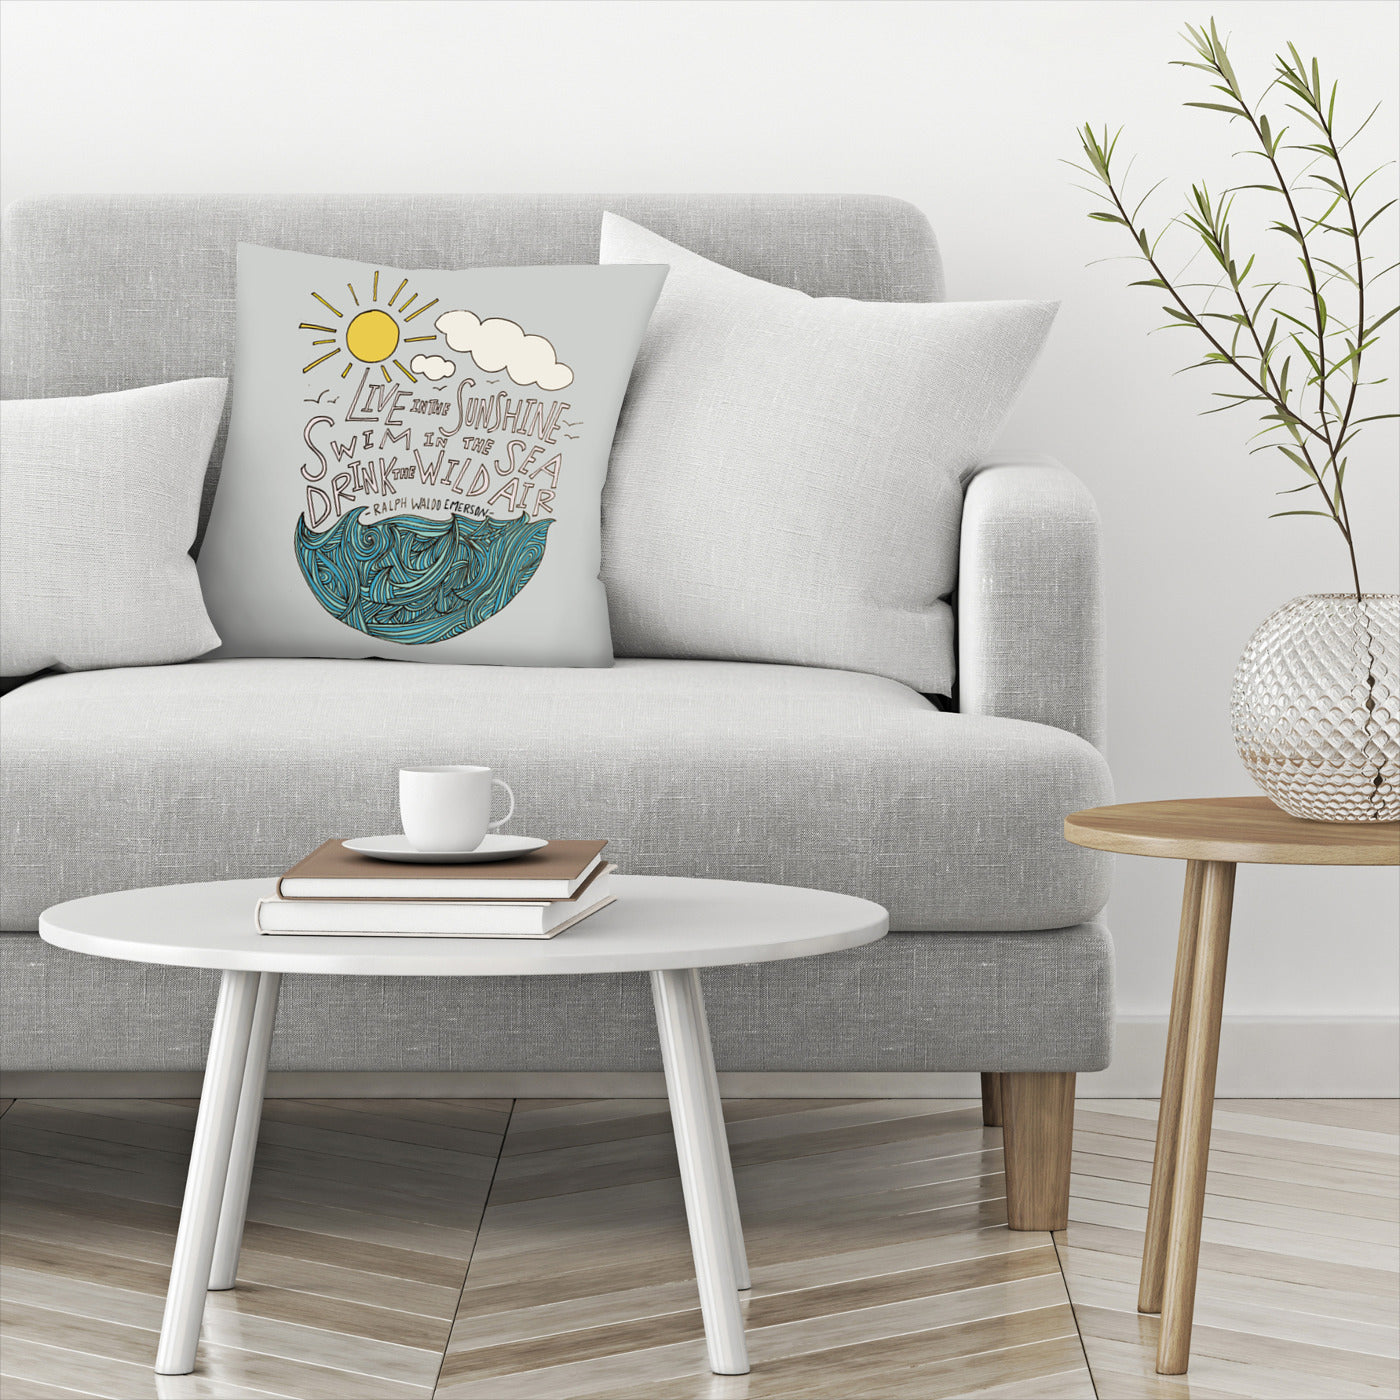 Live In The Sunshine by Leah Flores Decorative Pillow - Decorative Pillow - Americanflat